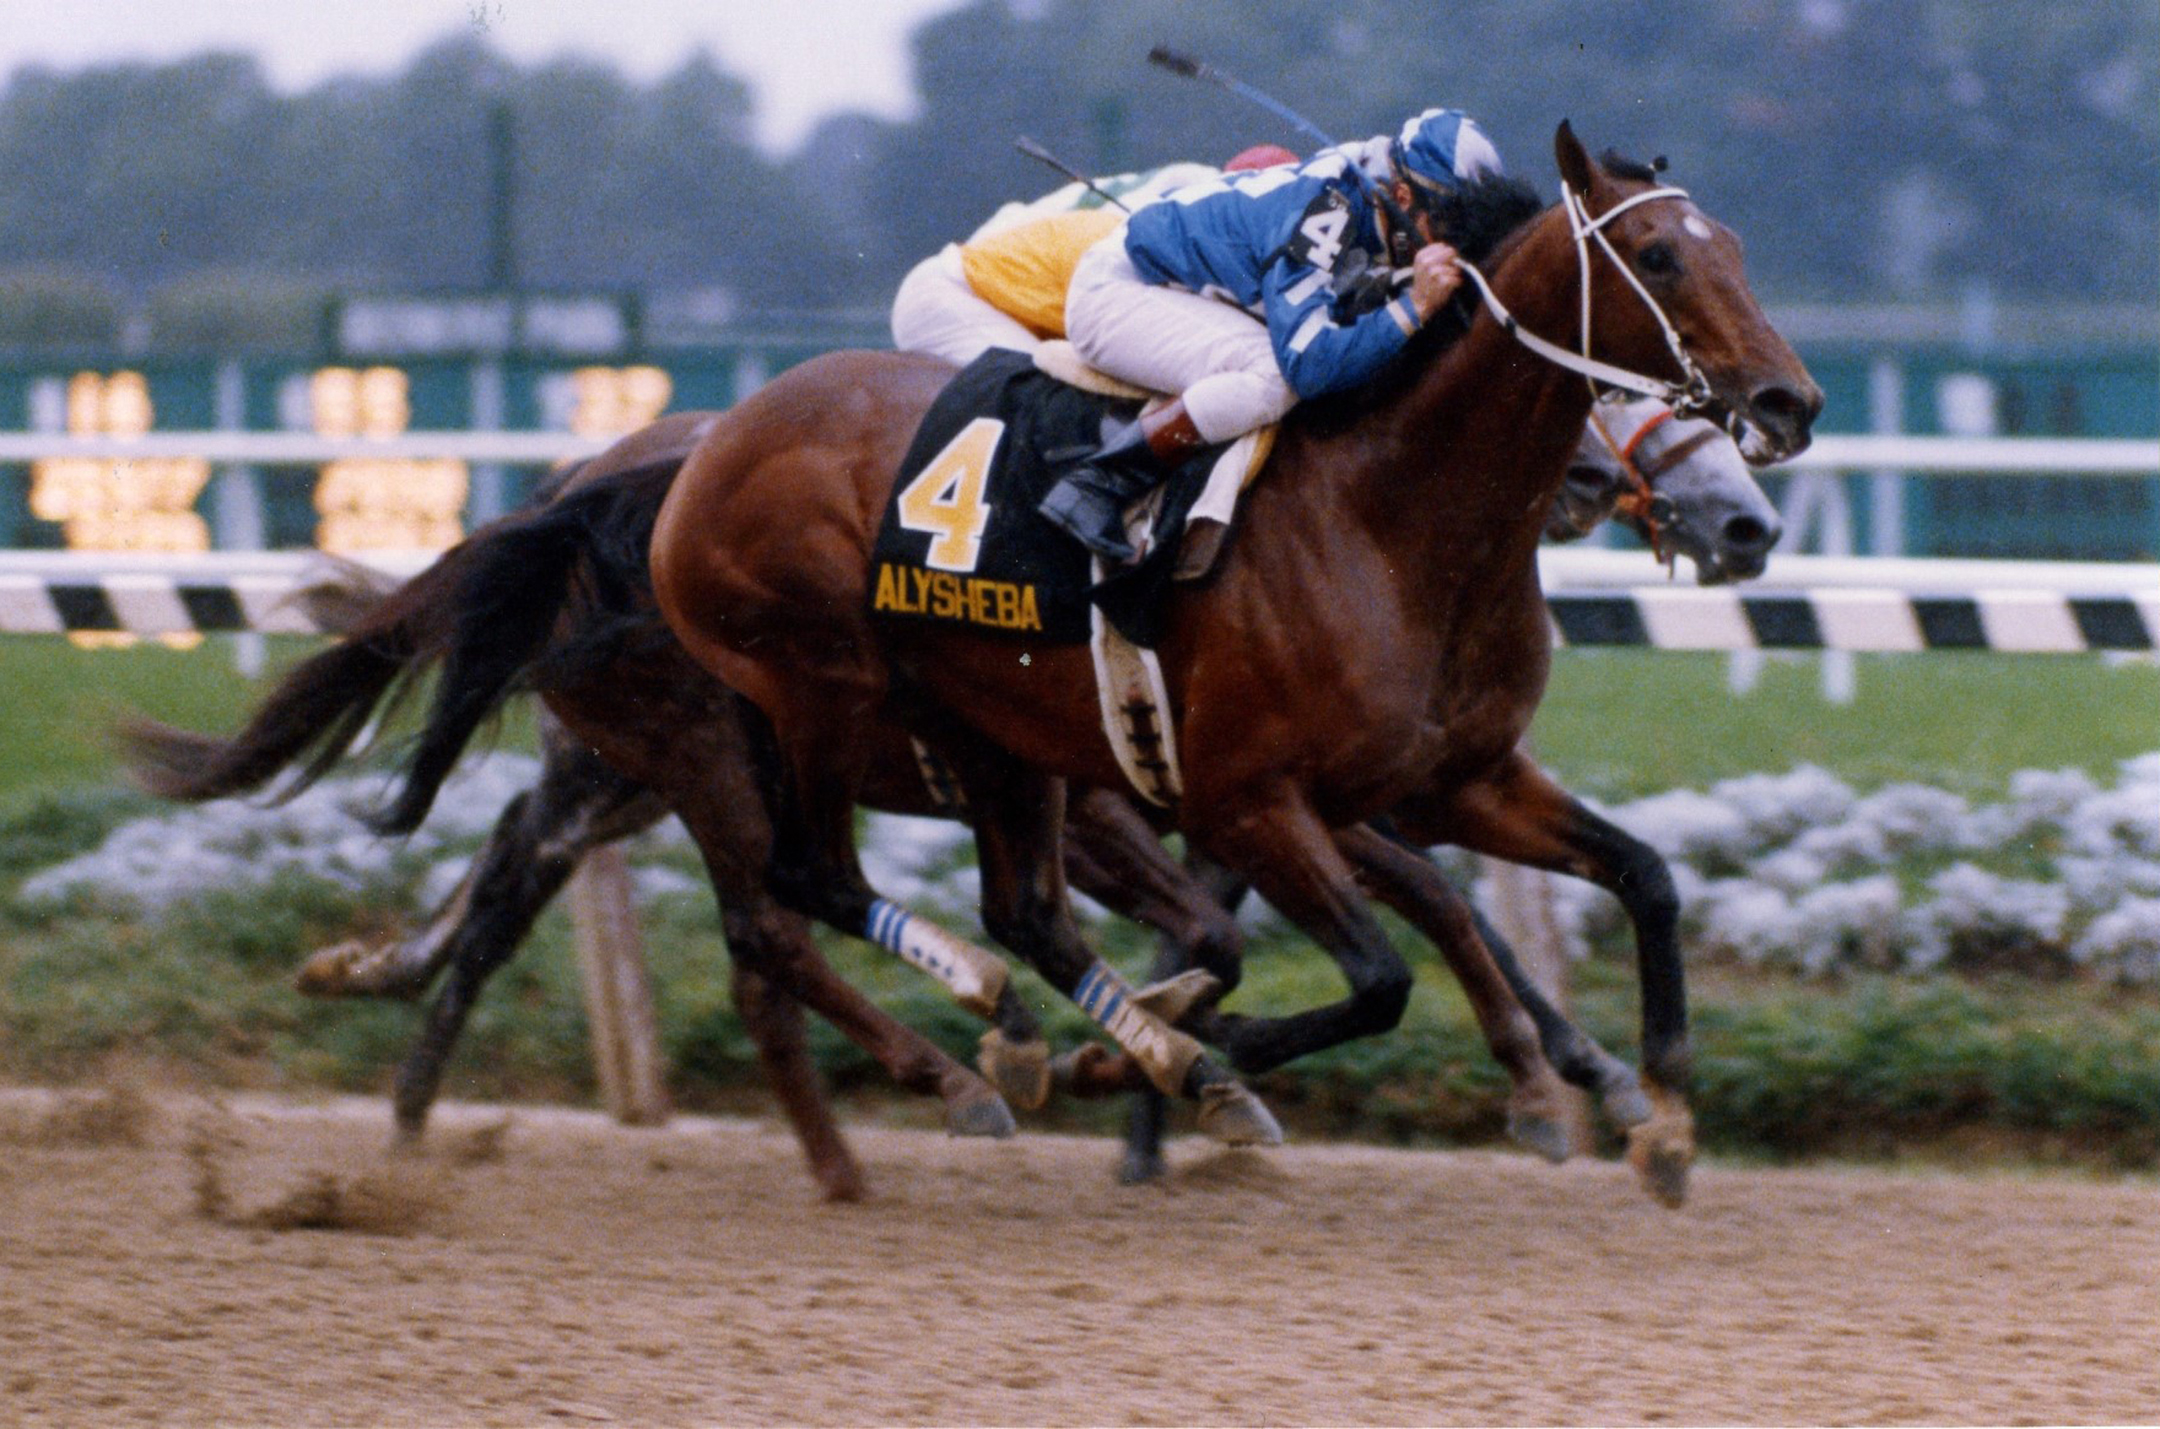 Alysheba (Chris McCarron up) wins the 1988 Woodward at Belmont Park (Barbara D. Livingston/Museum Collection)